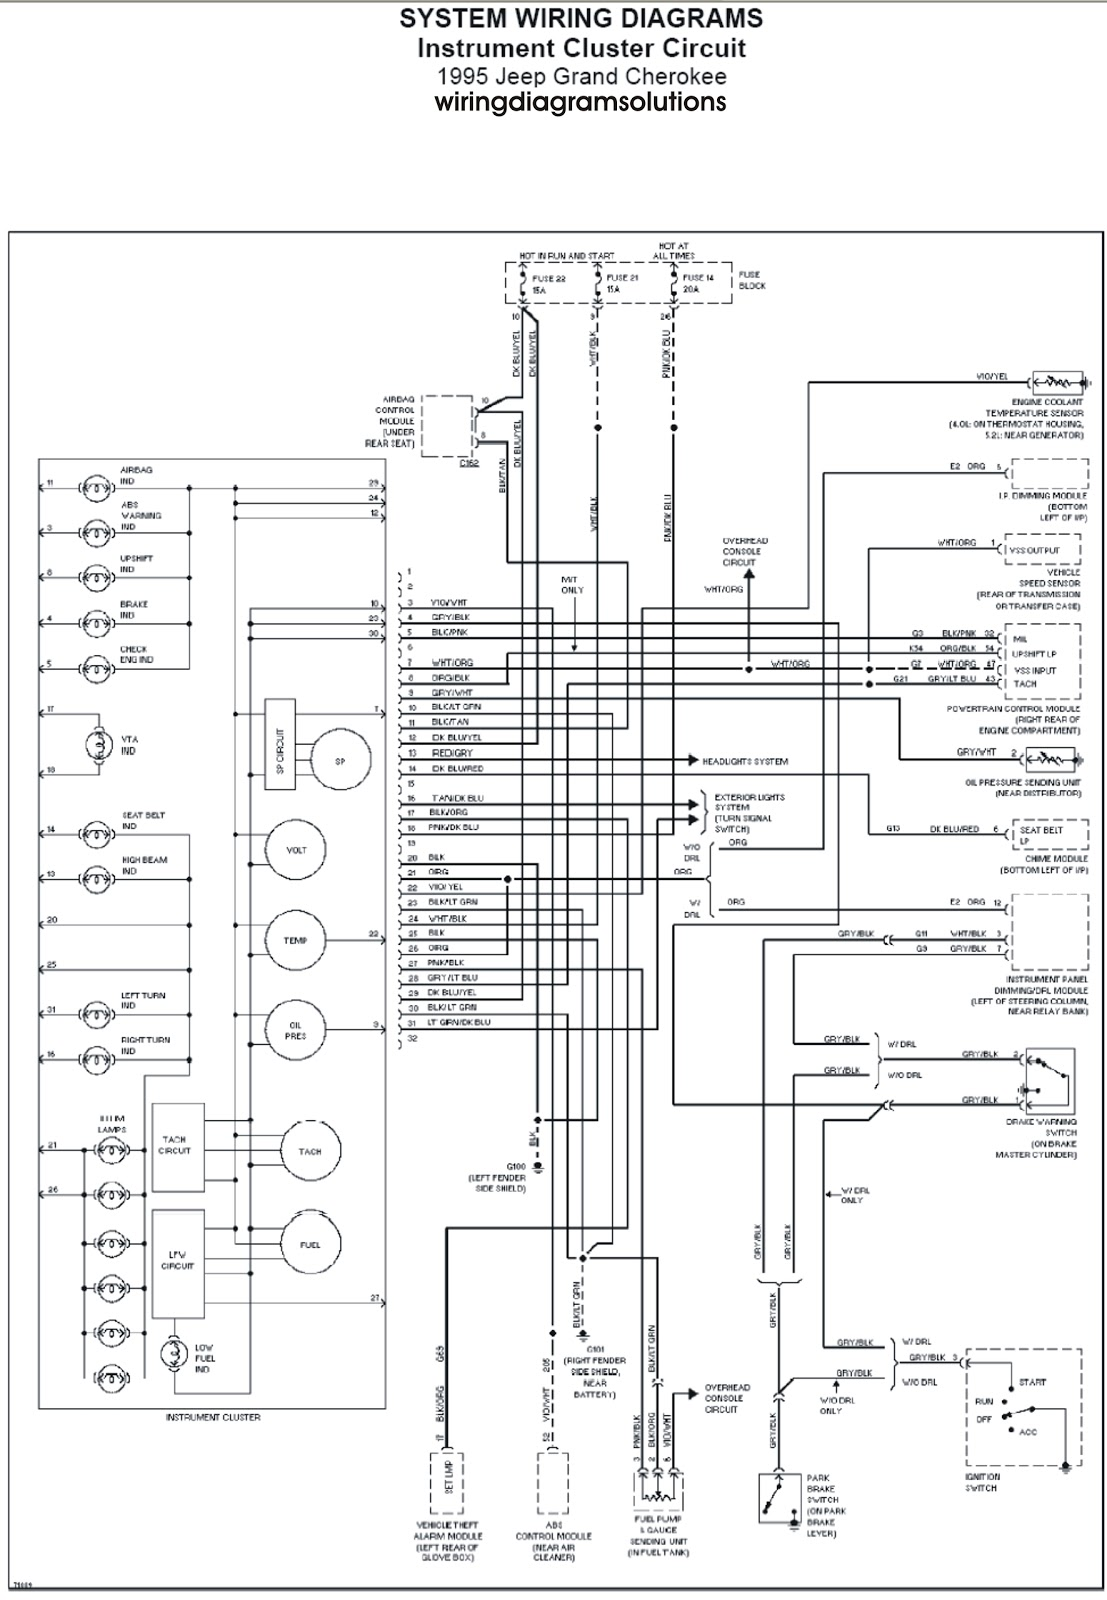 Groovy Porsche 914 Electrical Relay Wiring Diagram In Addition Wiring Wiring Digital Resources Remcakbiperorg